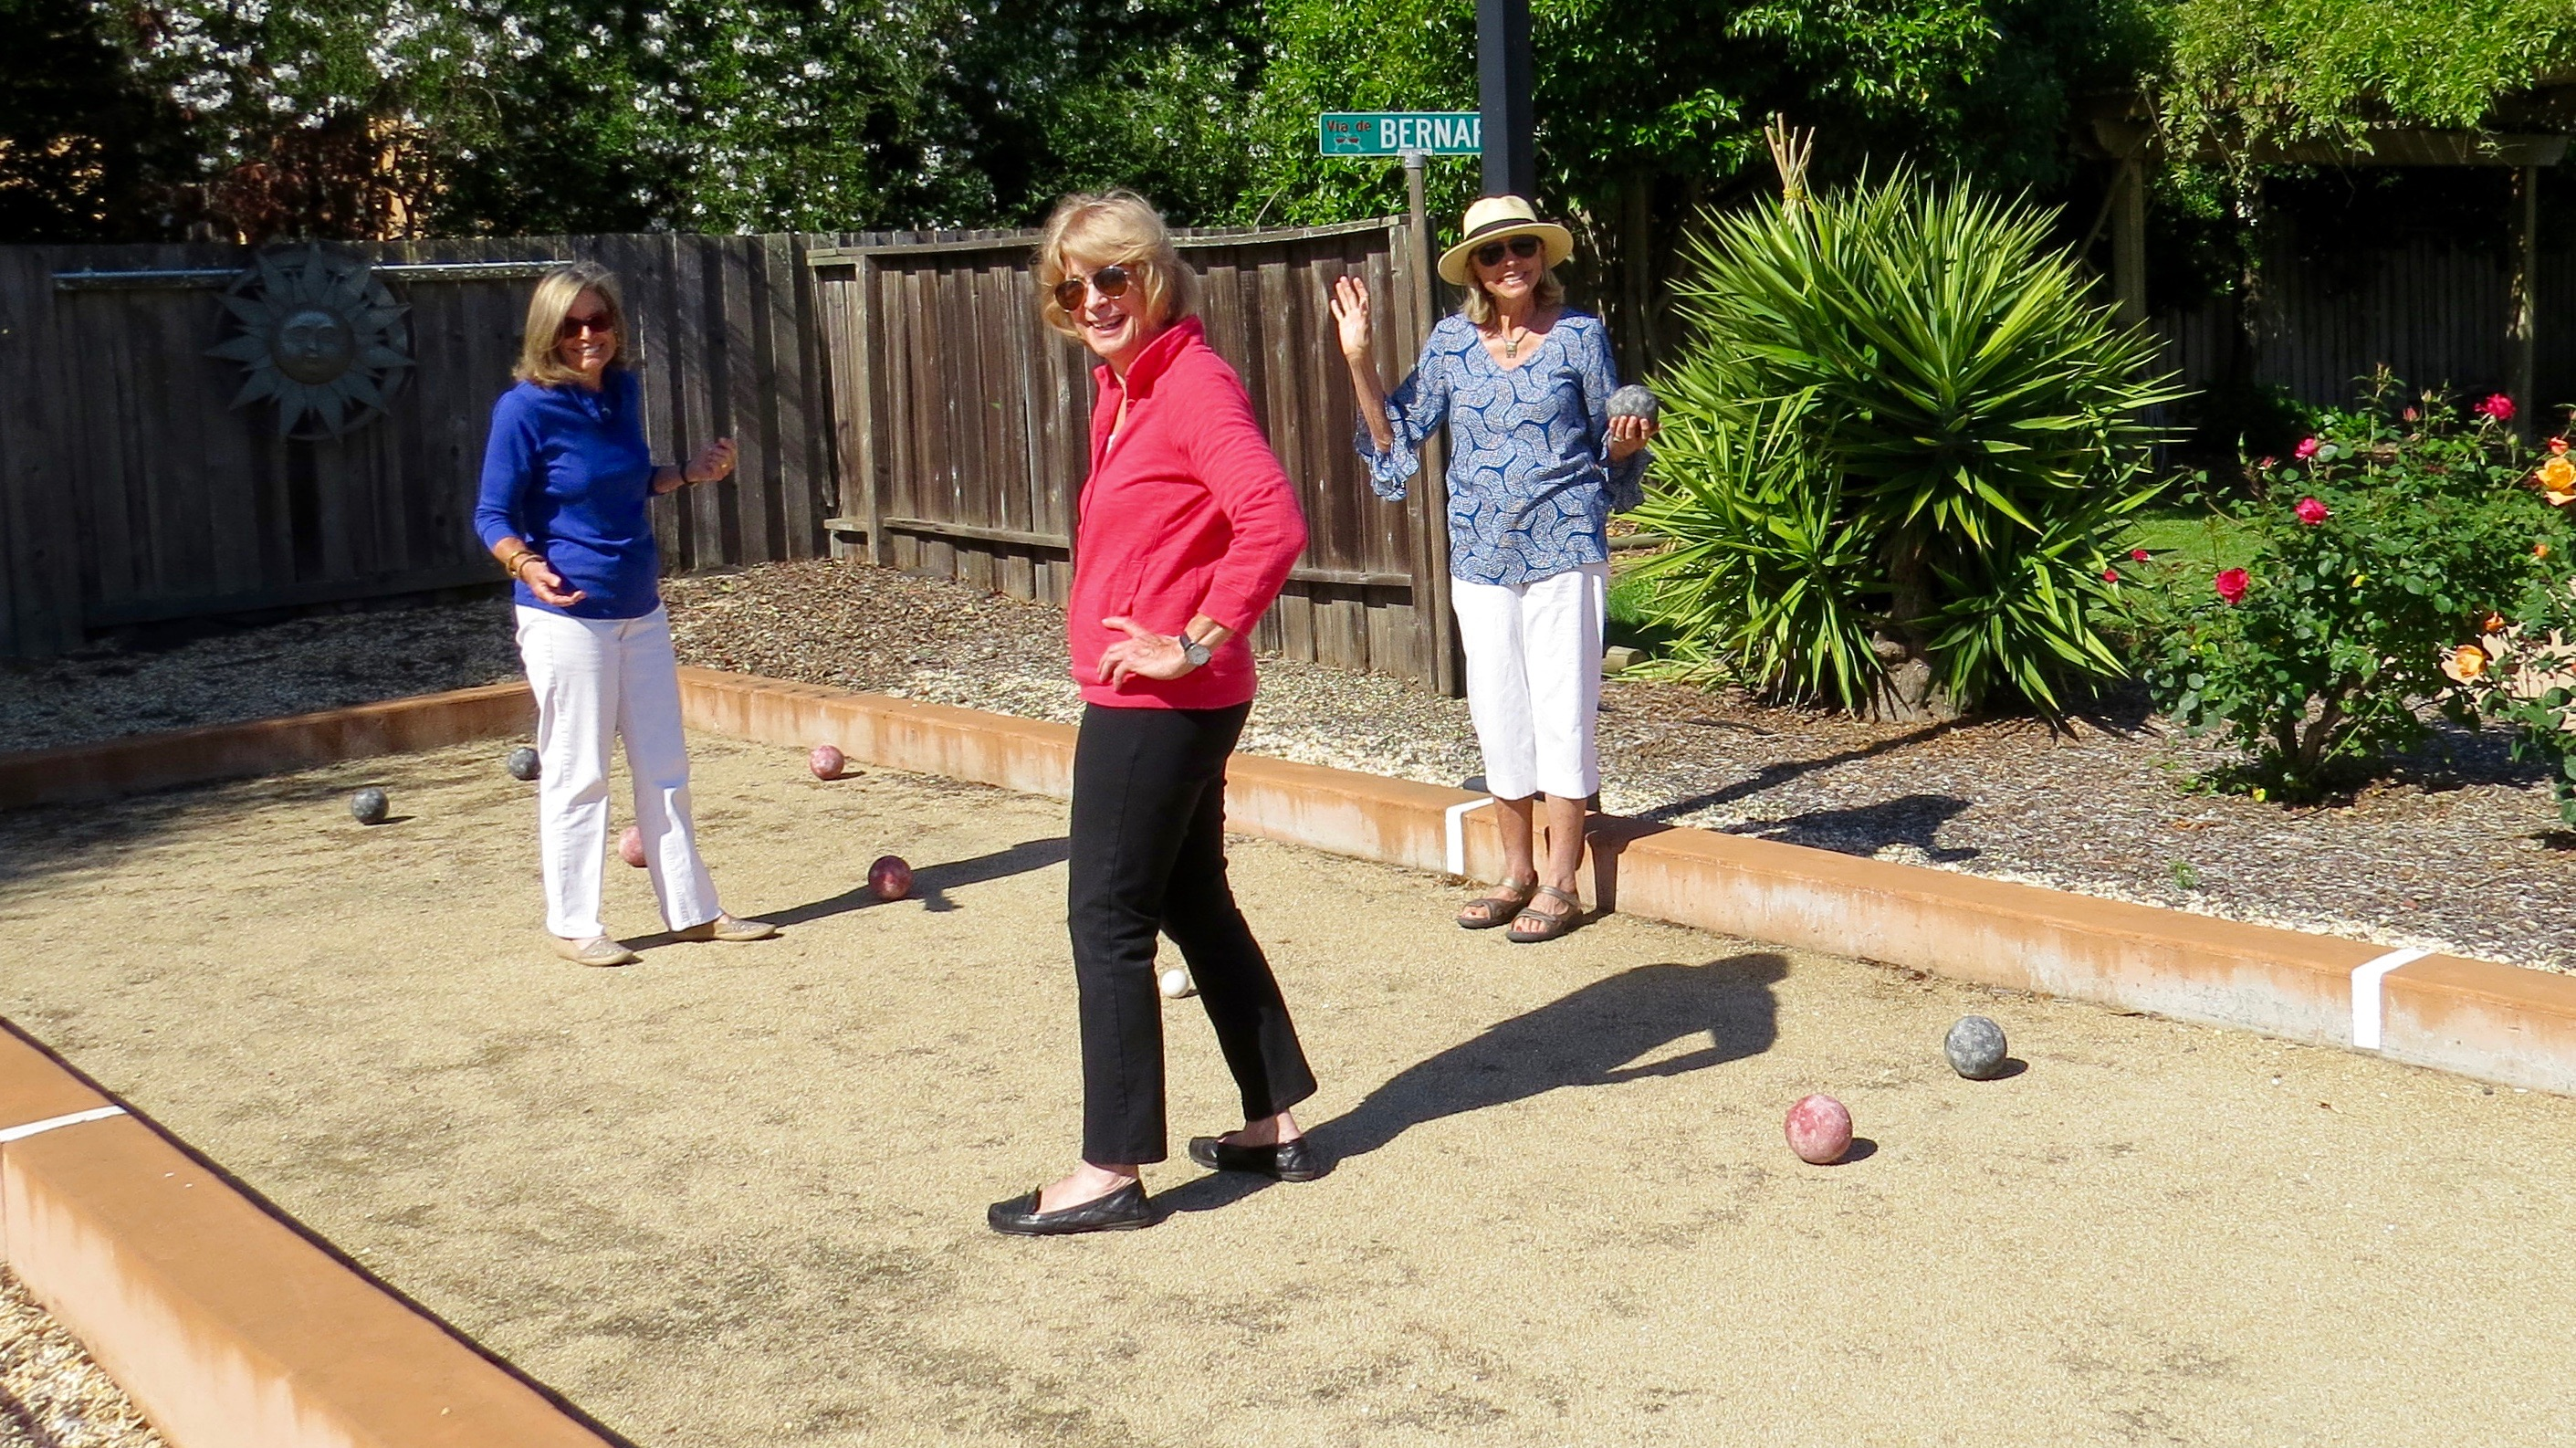 Following Rita's tutorial, Susan and I tried our non-Italian hands at Bocce Ball.  I fulfilled my PE requirement at Florida State by  taking Bowling (not particularly proud of that) so I held my own.